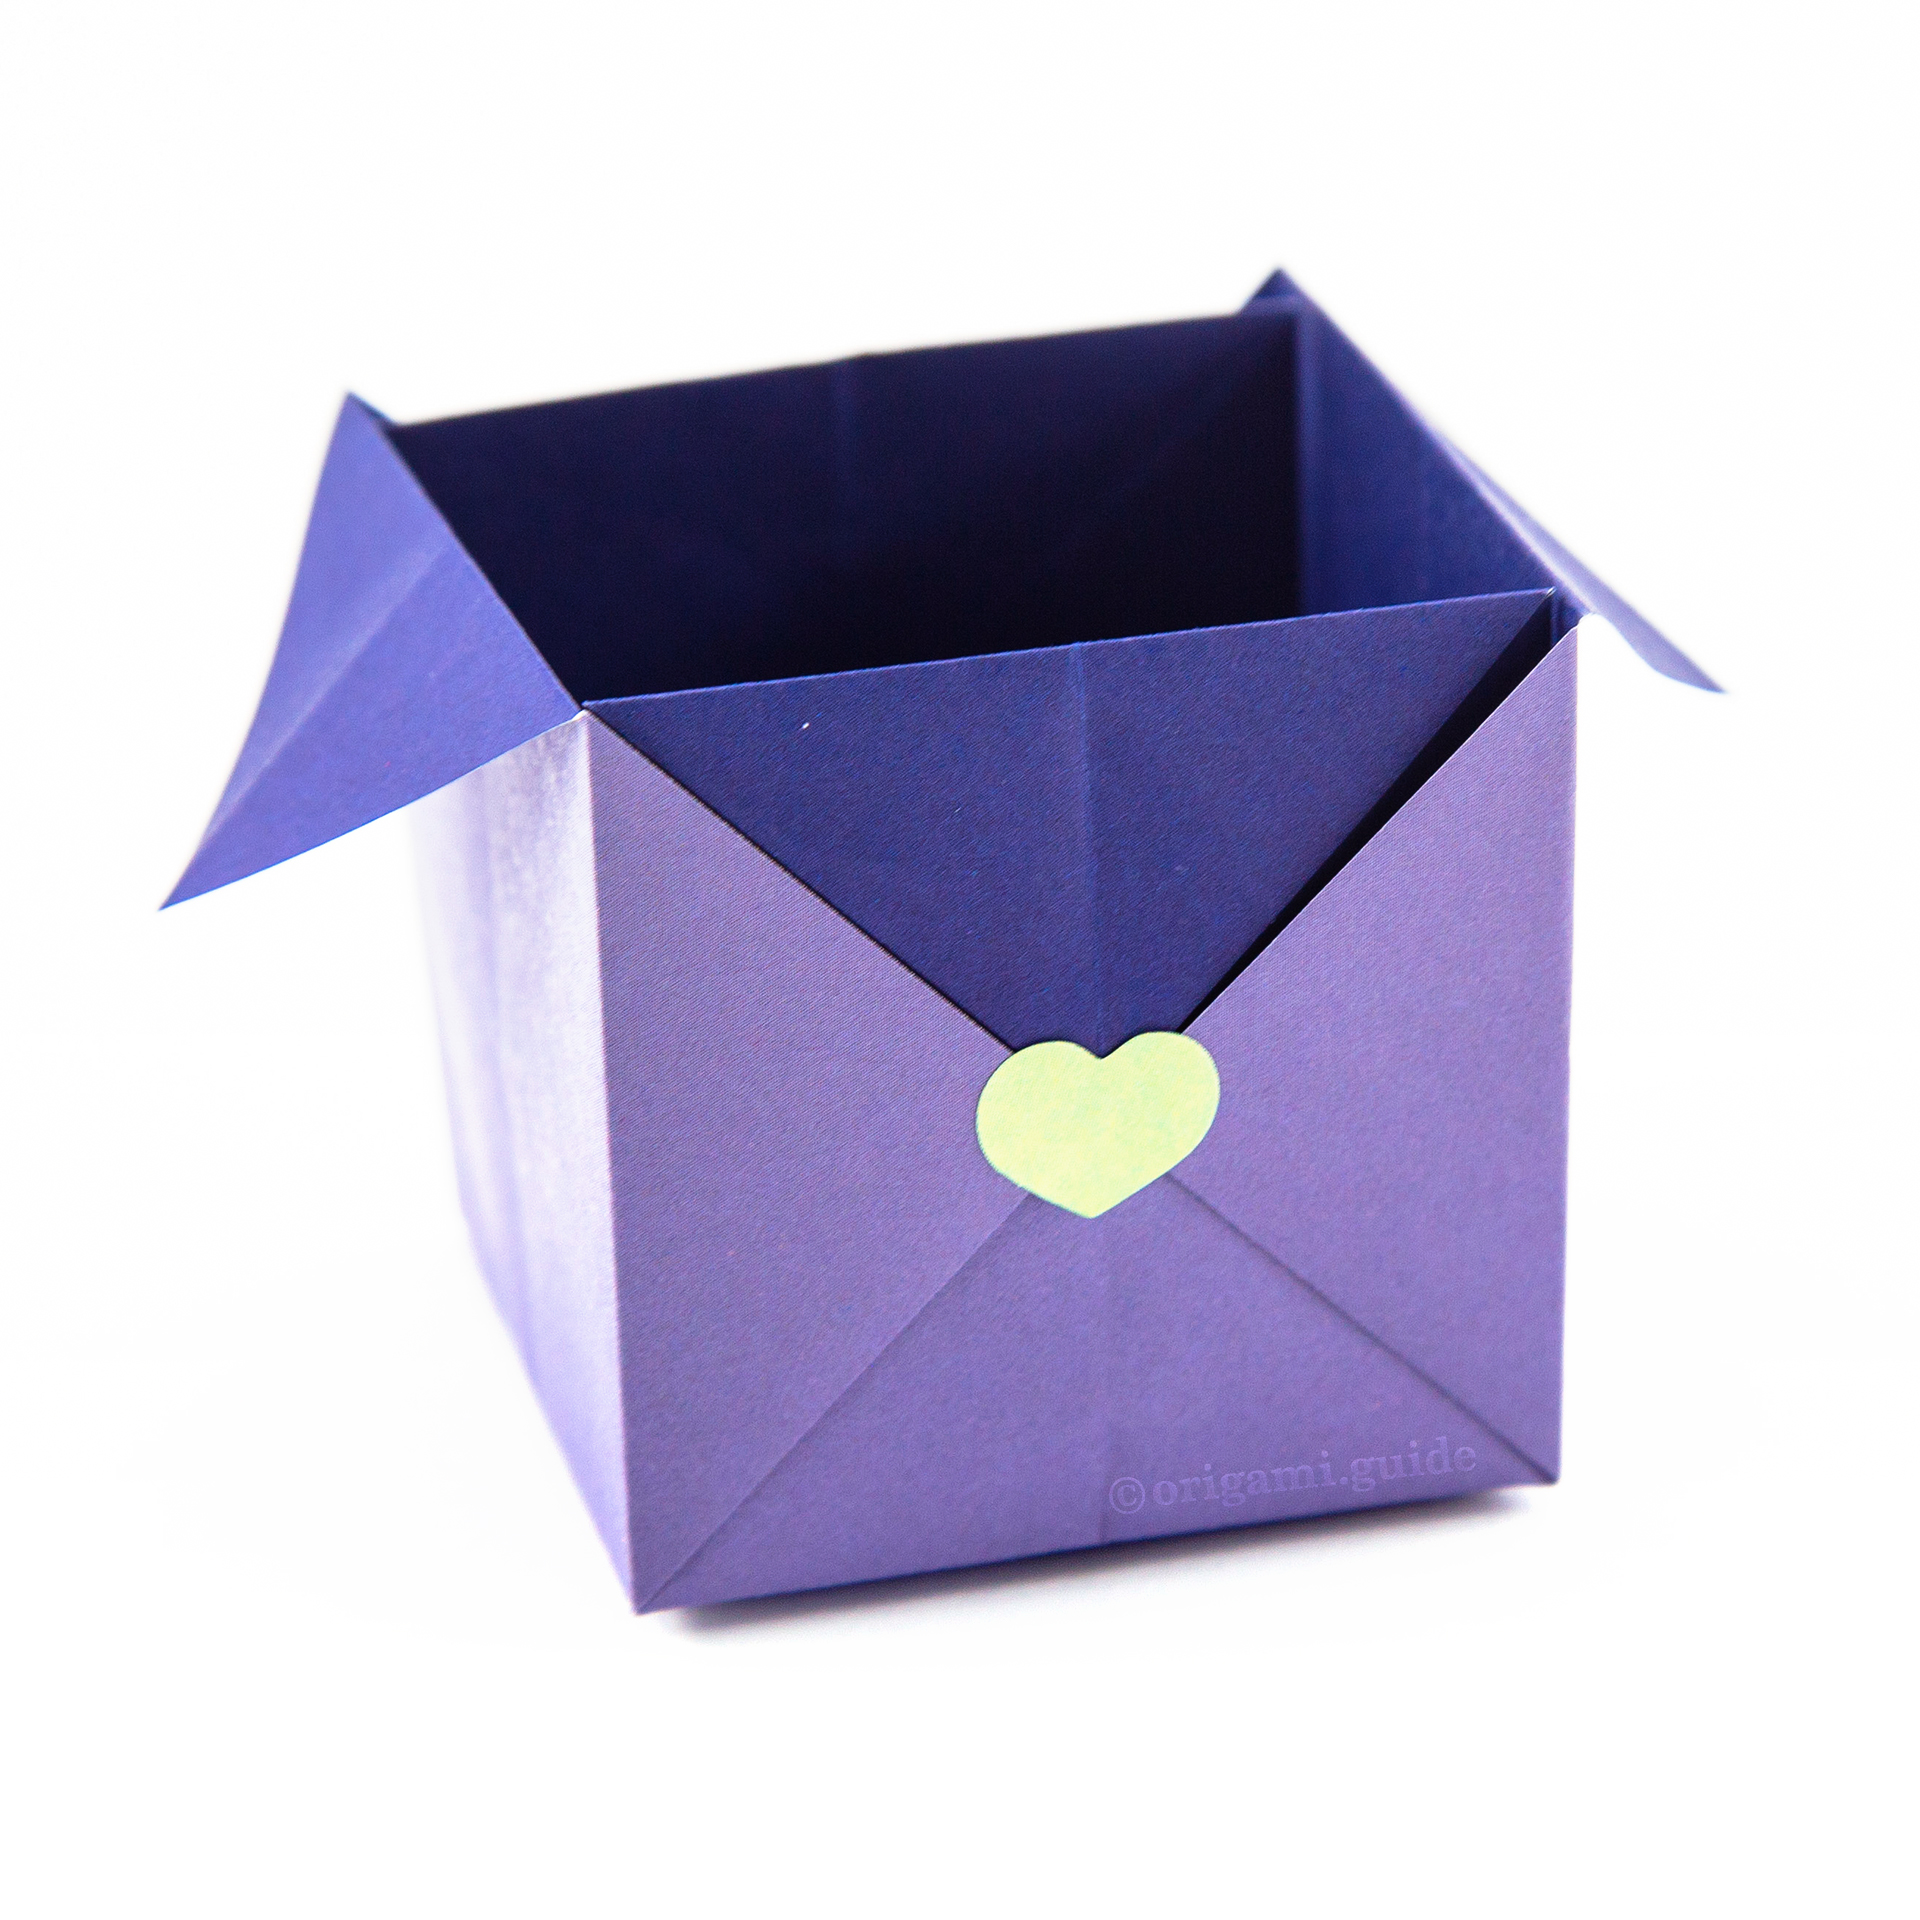 Origami Spice Boxes Tutorial - Stacking Box - Paper Kawaii - YouTube | 1920x1920